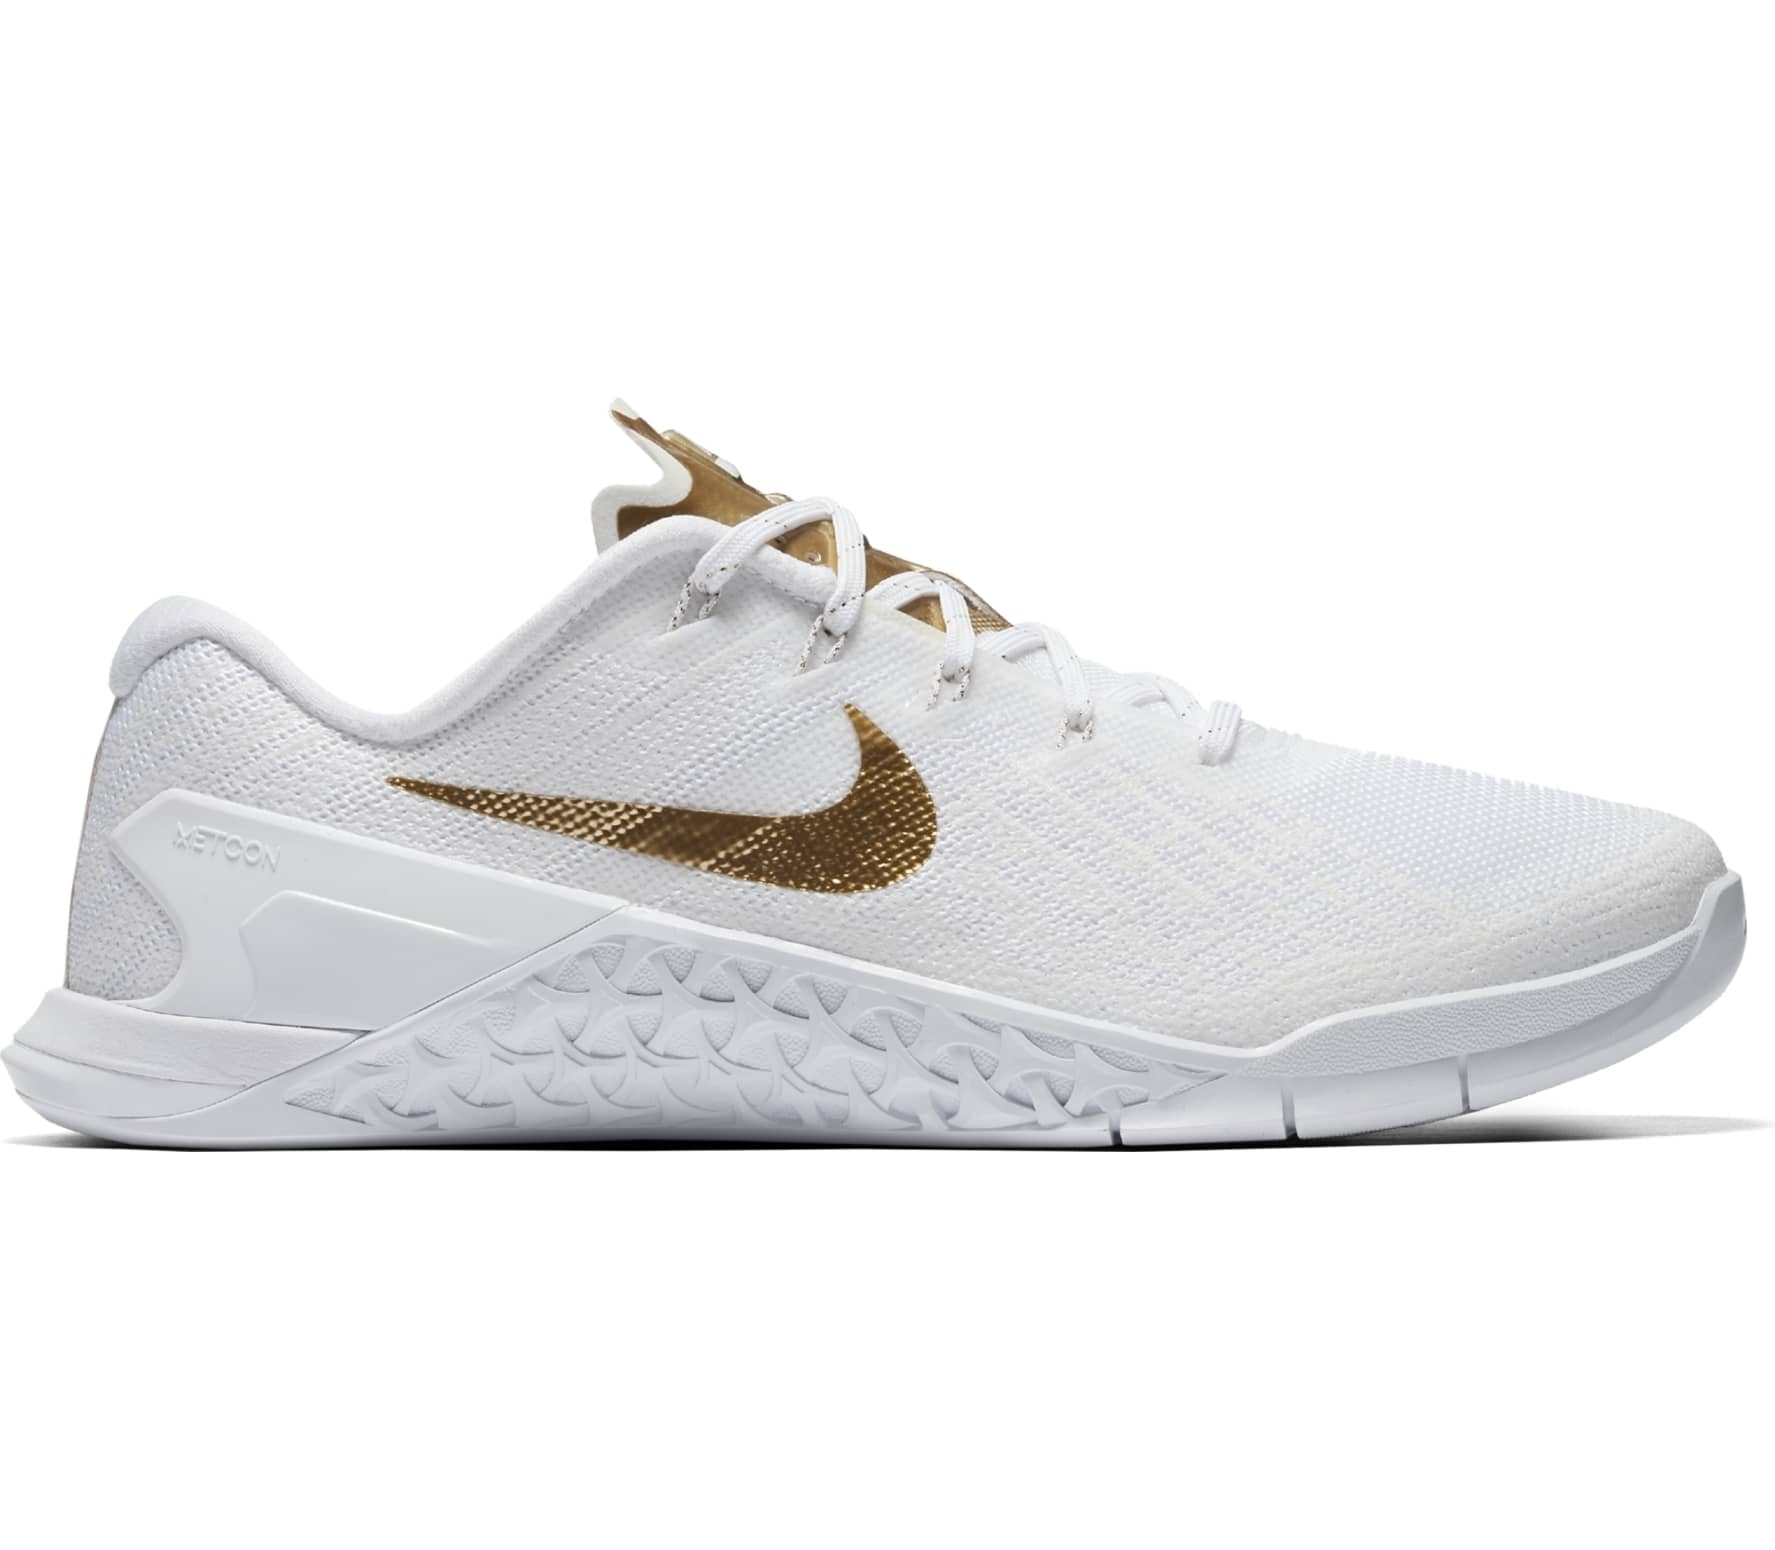 factory authentic 931ca e9ed9 ... free shipping nike metcon 3 womens training shoes white gold e9fca 3083c